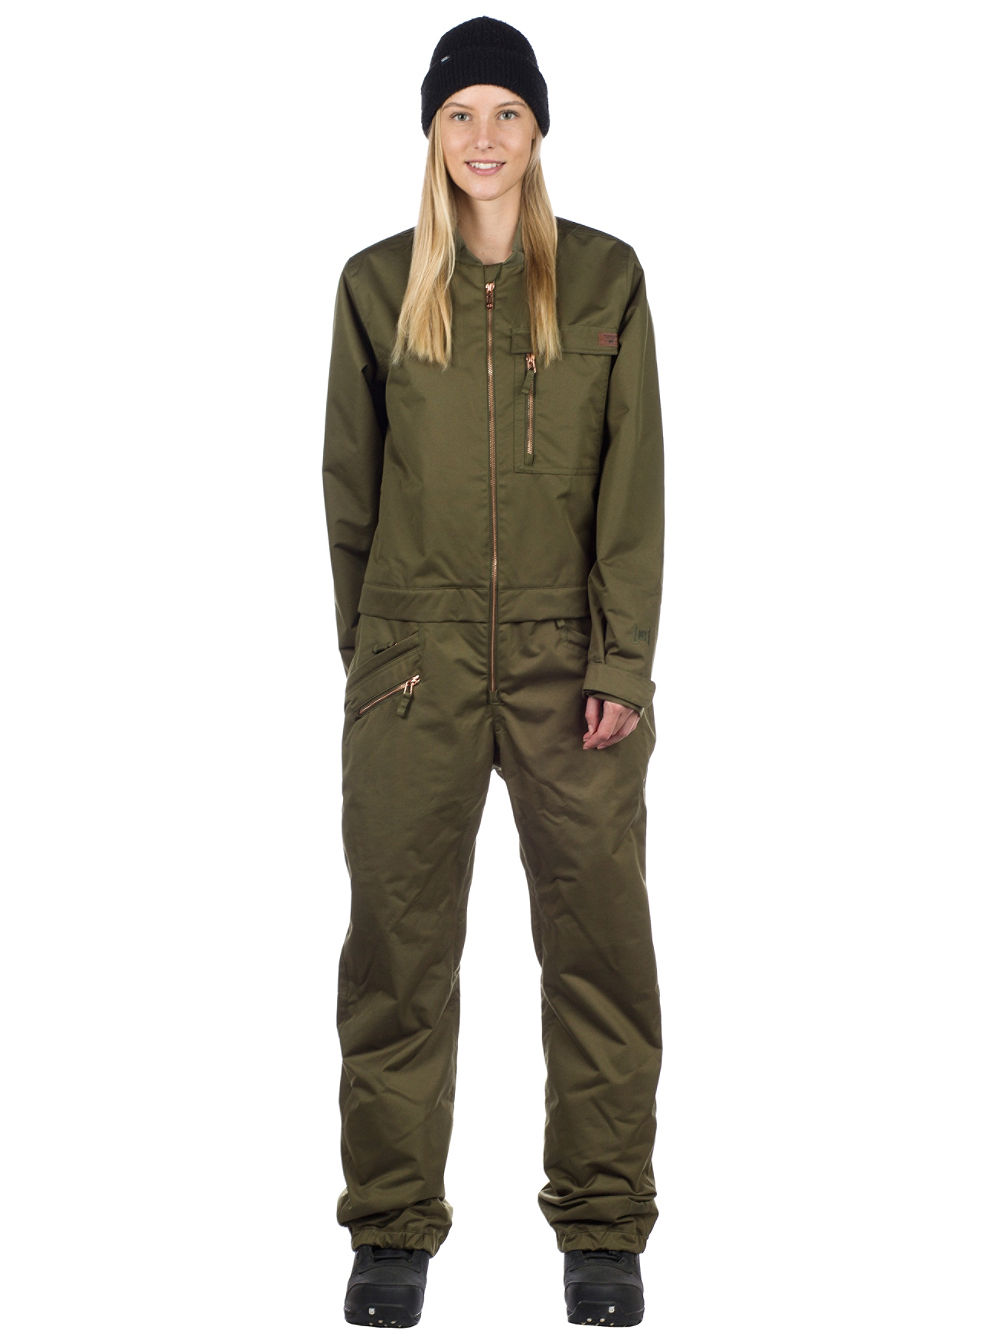 Helldiver Overall